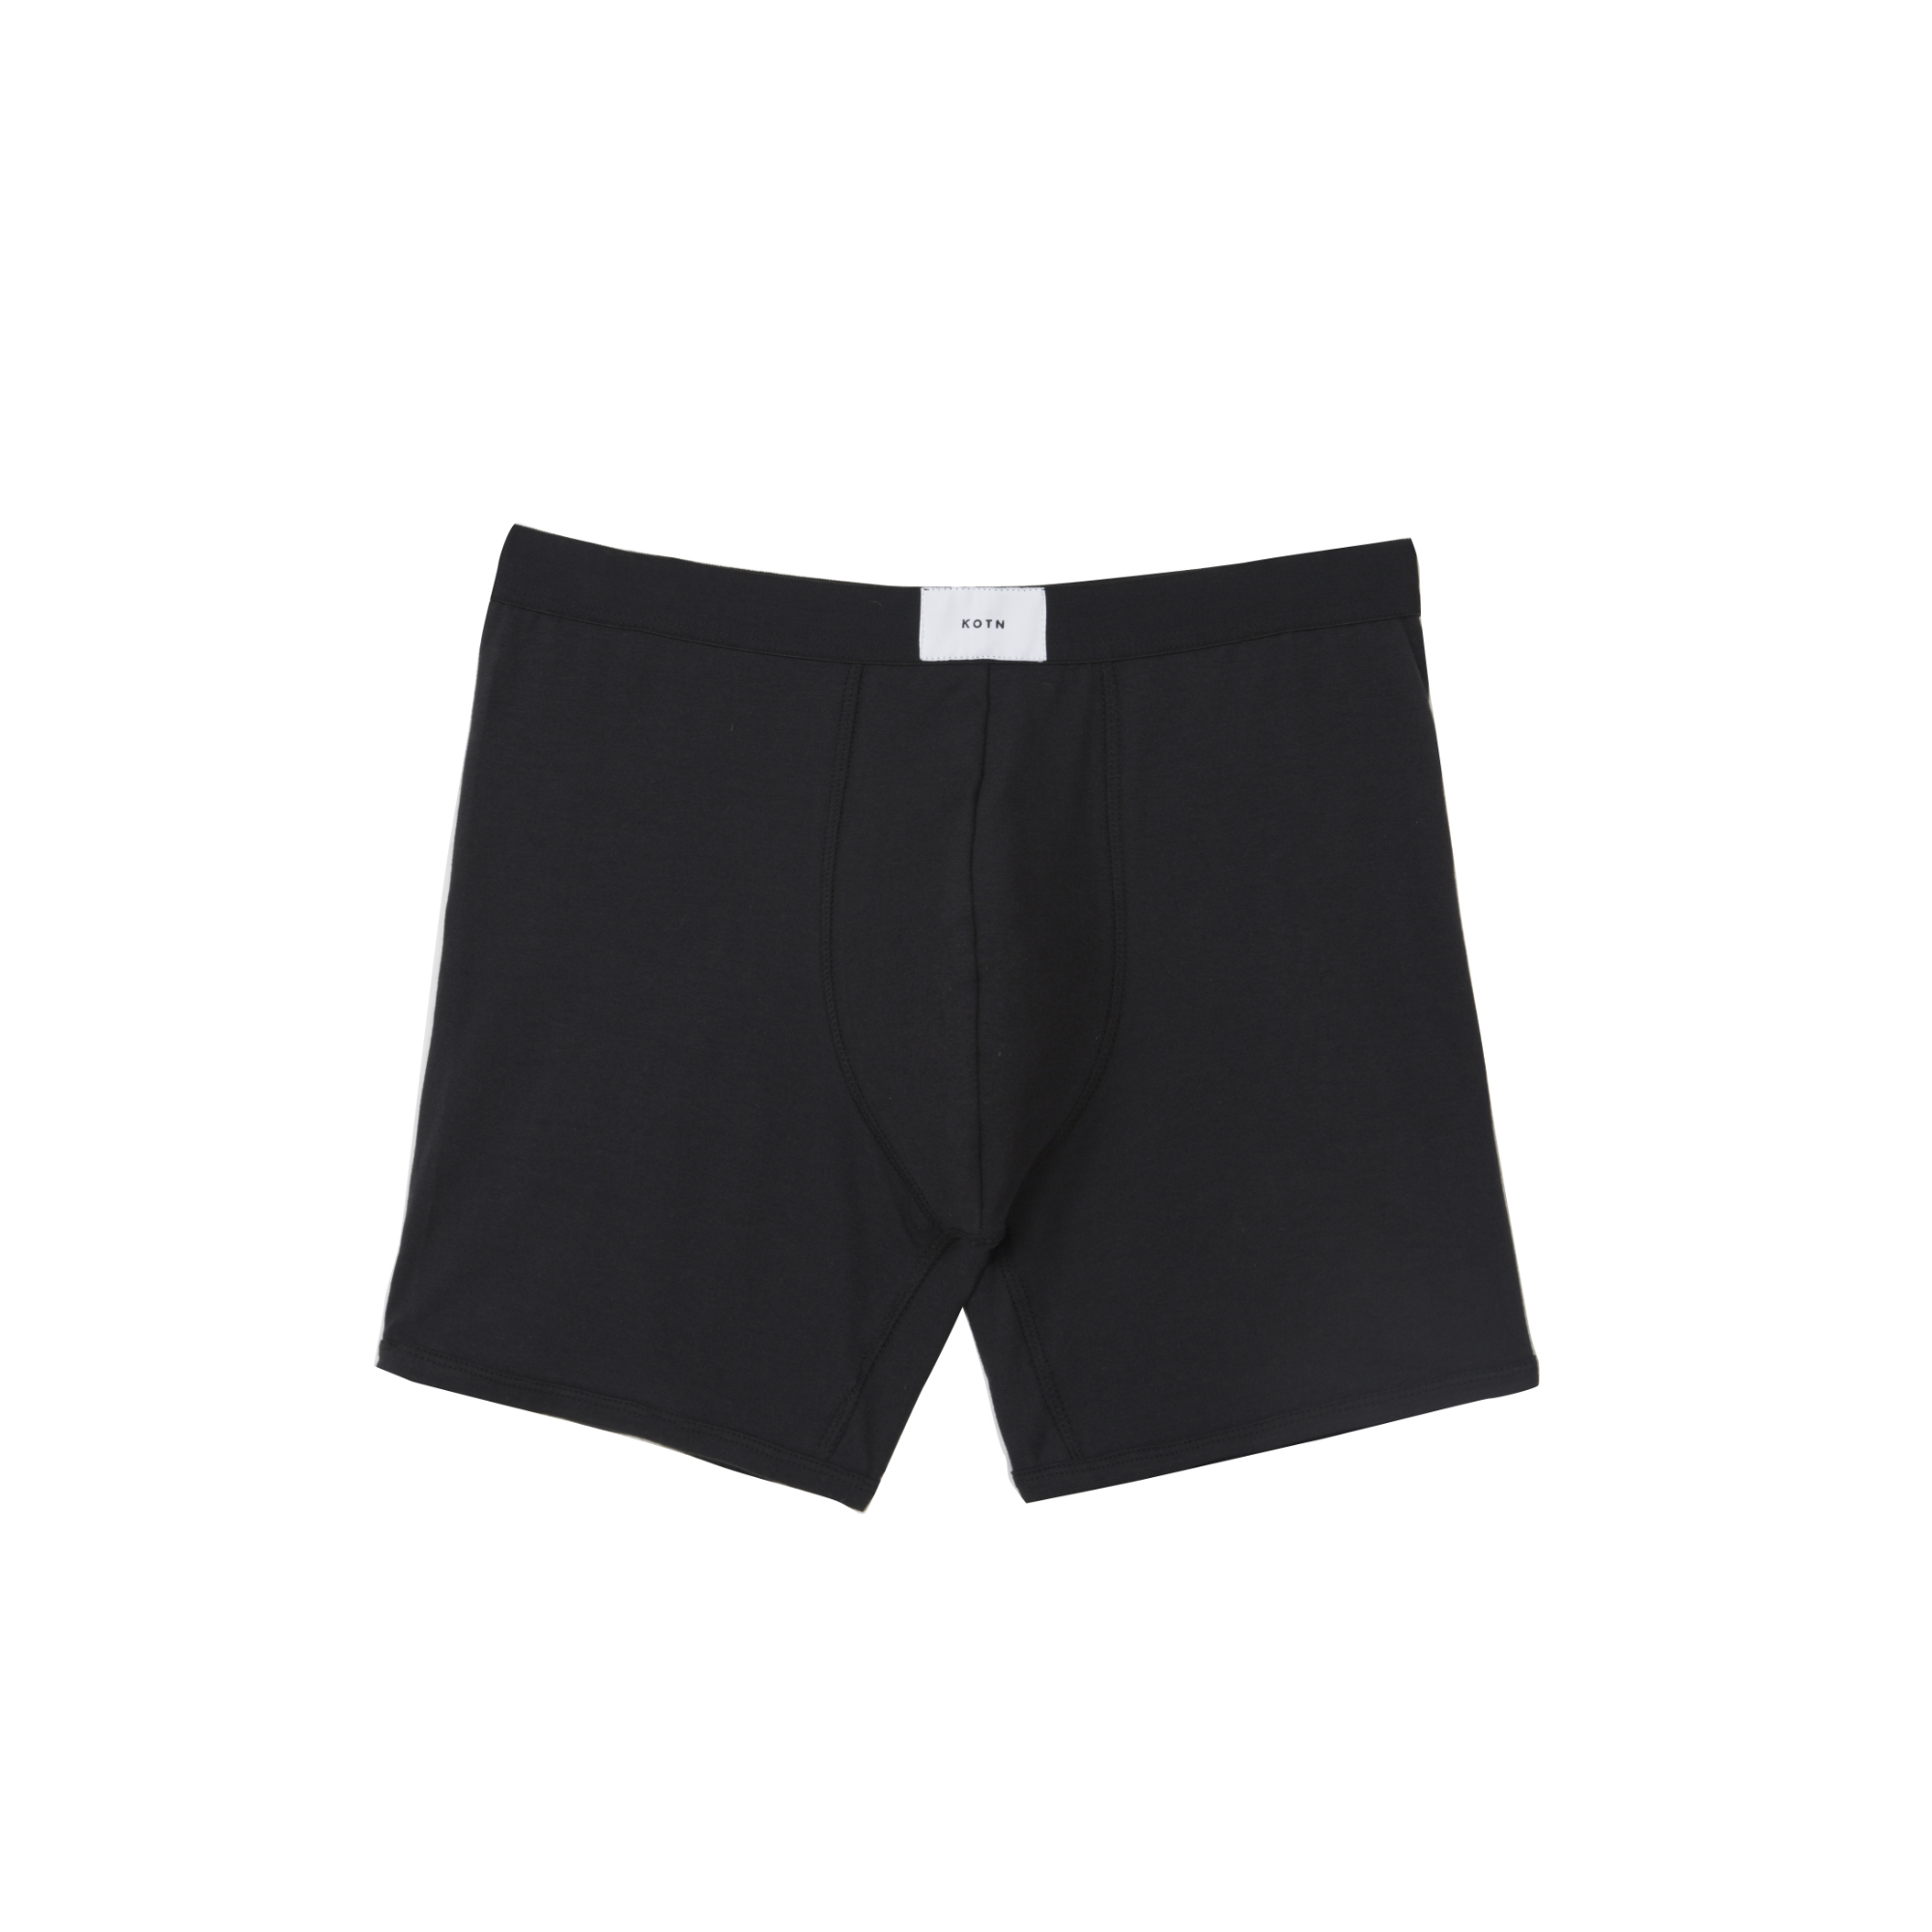 Kotn Black Underwear